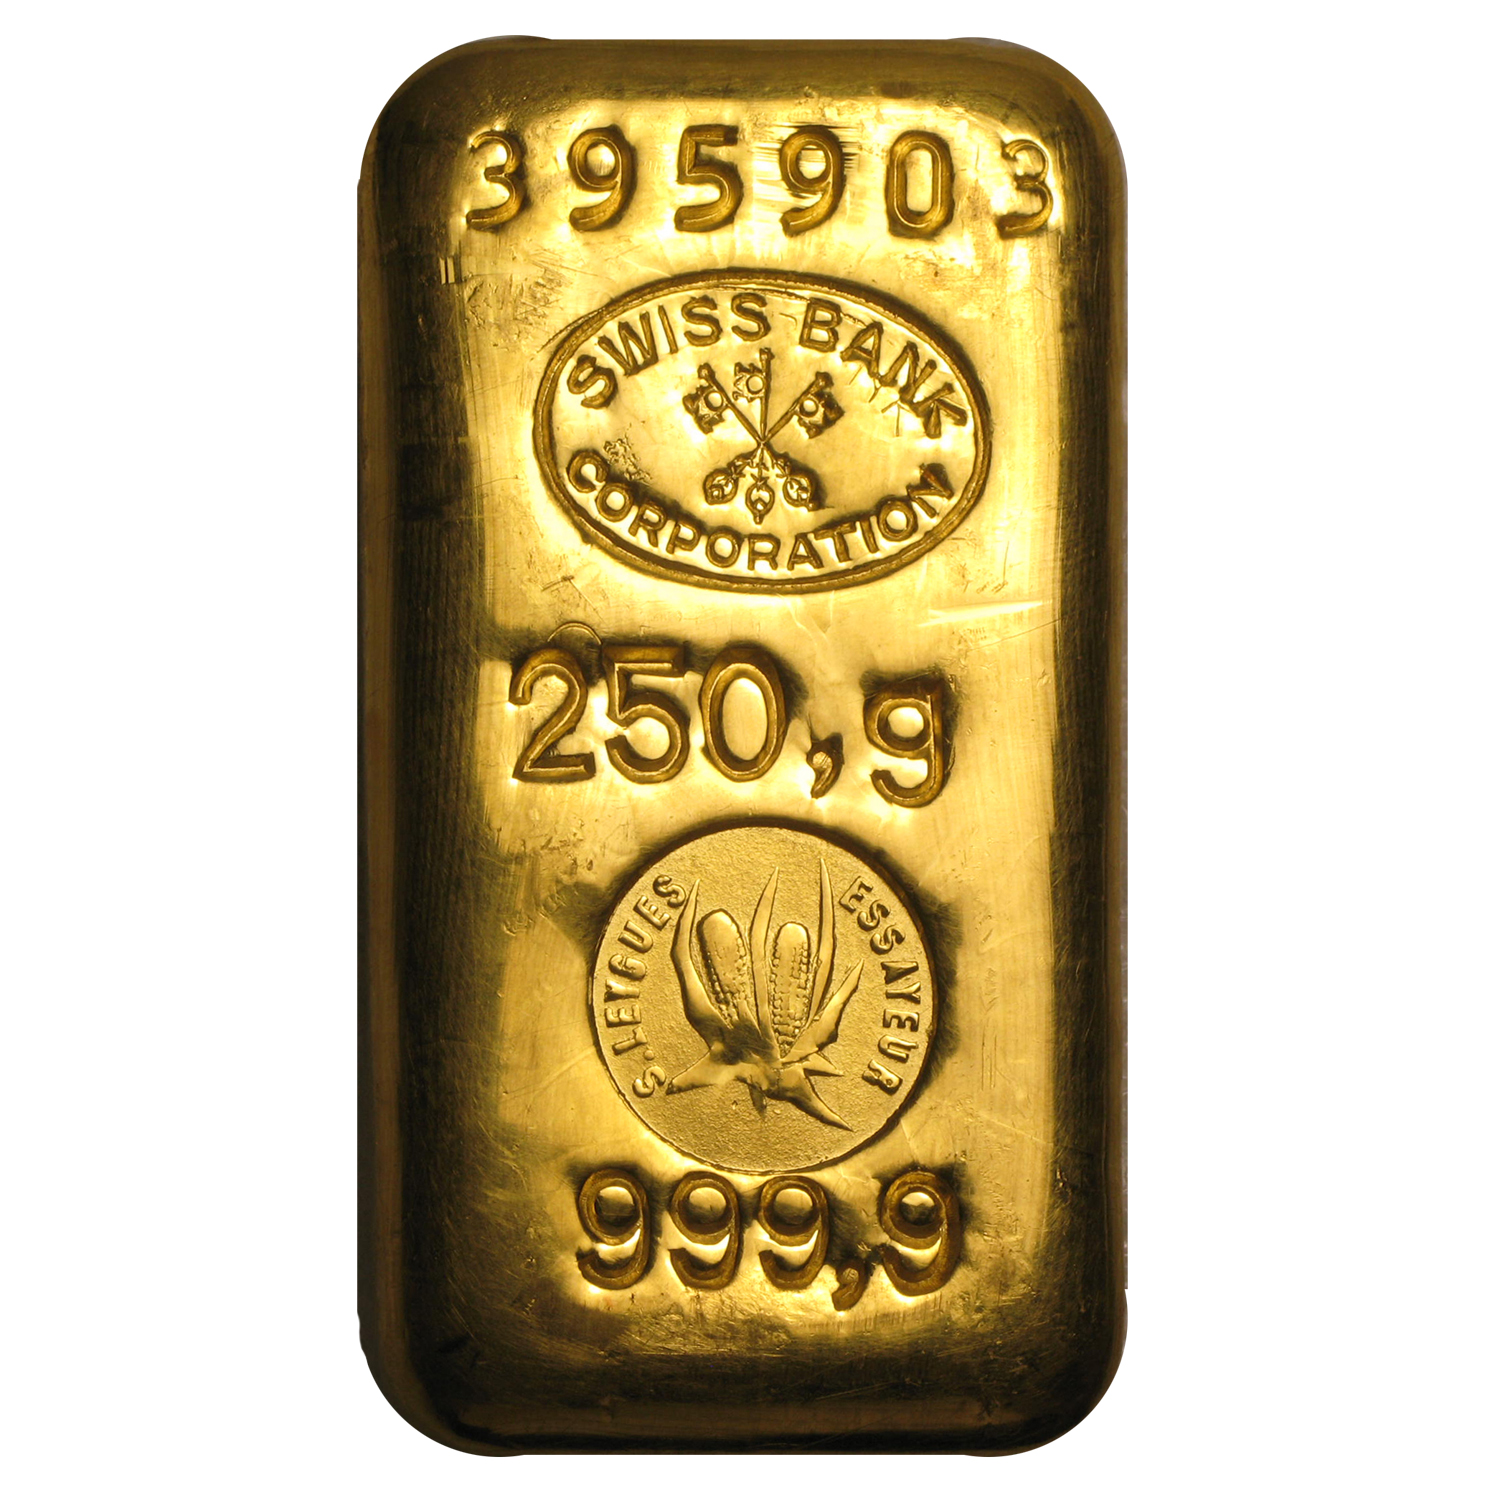 250 gram Gold Bar - Swiss Bank Corporation